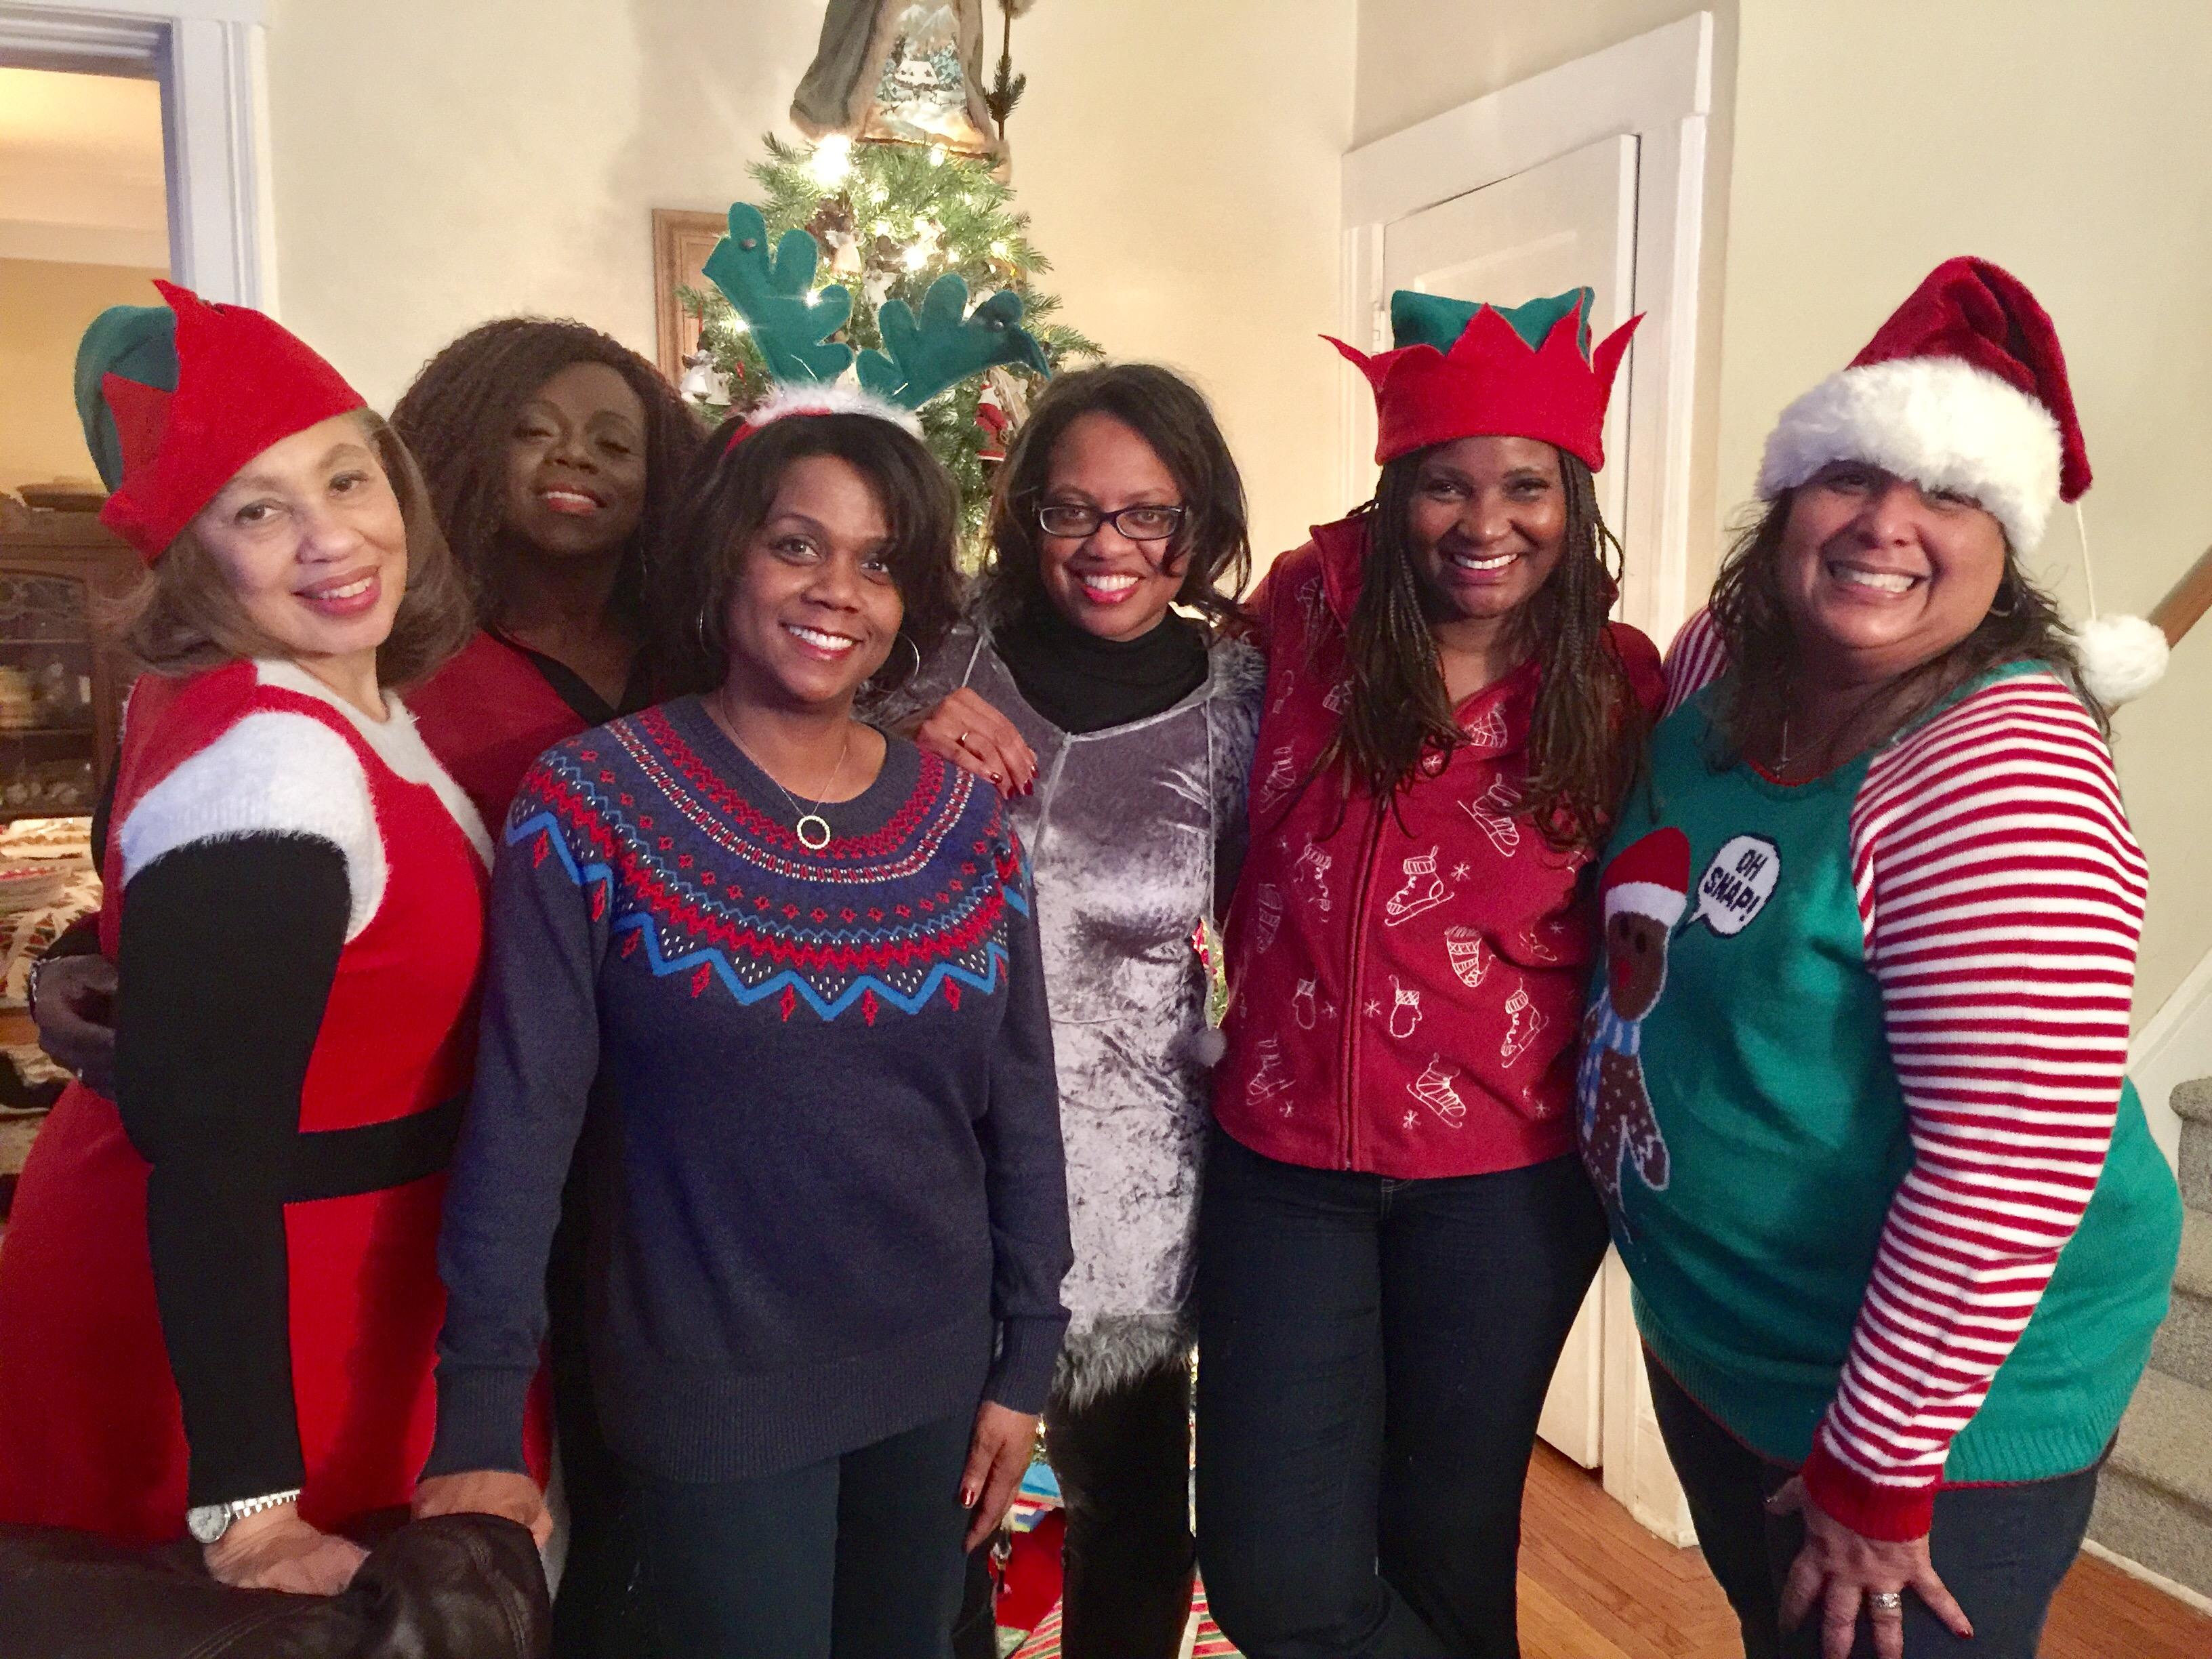 gucc-associates-chapter-members-and-friends-at-annual-ugly-sweater-party-at-mary-whitners-home_32082